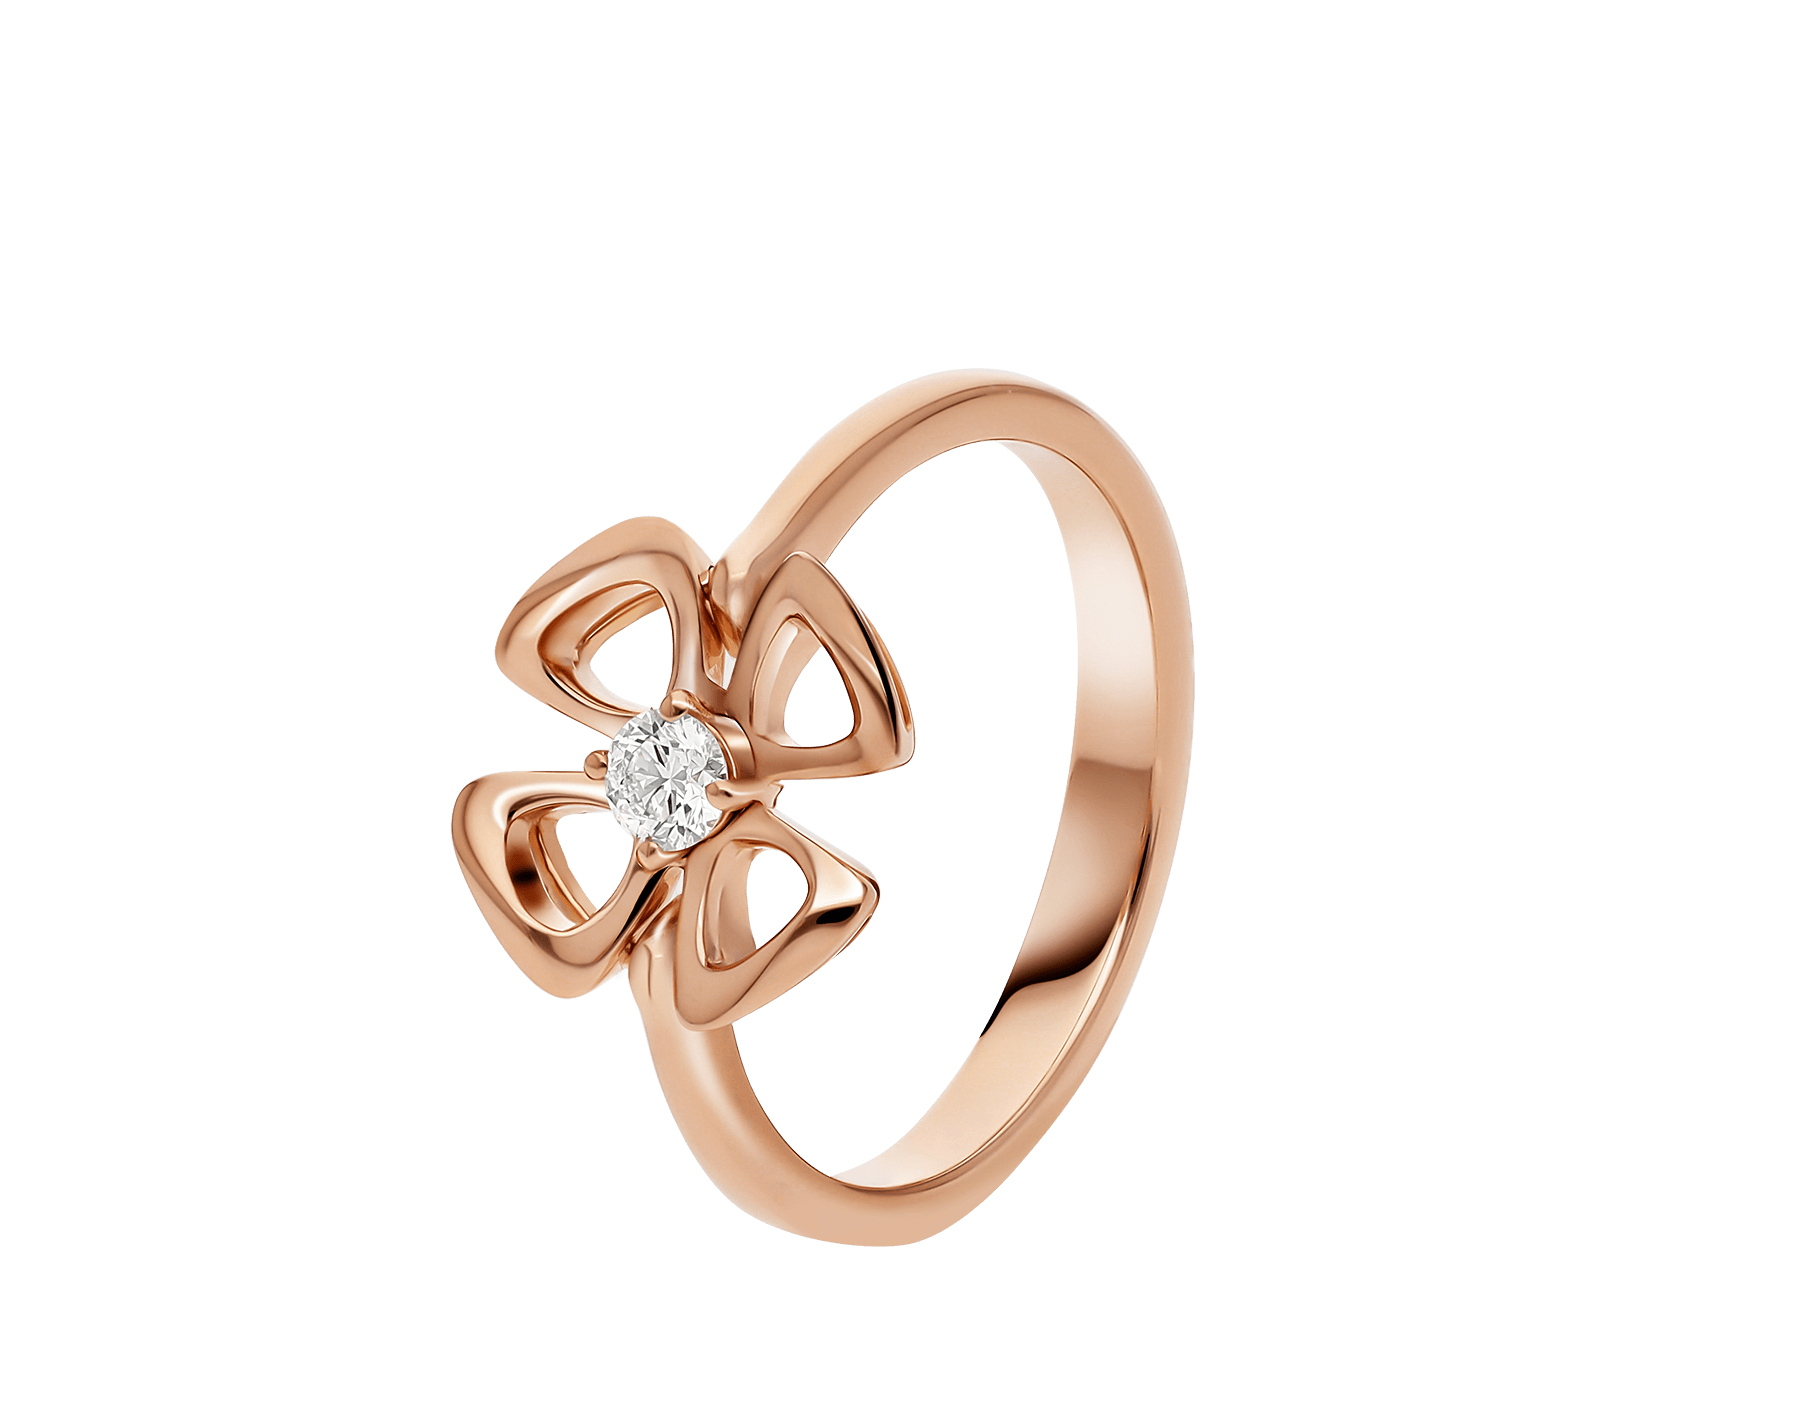 Fiorever 18 kt rose gold ring set with a central diamond (0.10 ct) AN858438 image 1